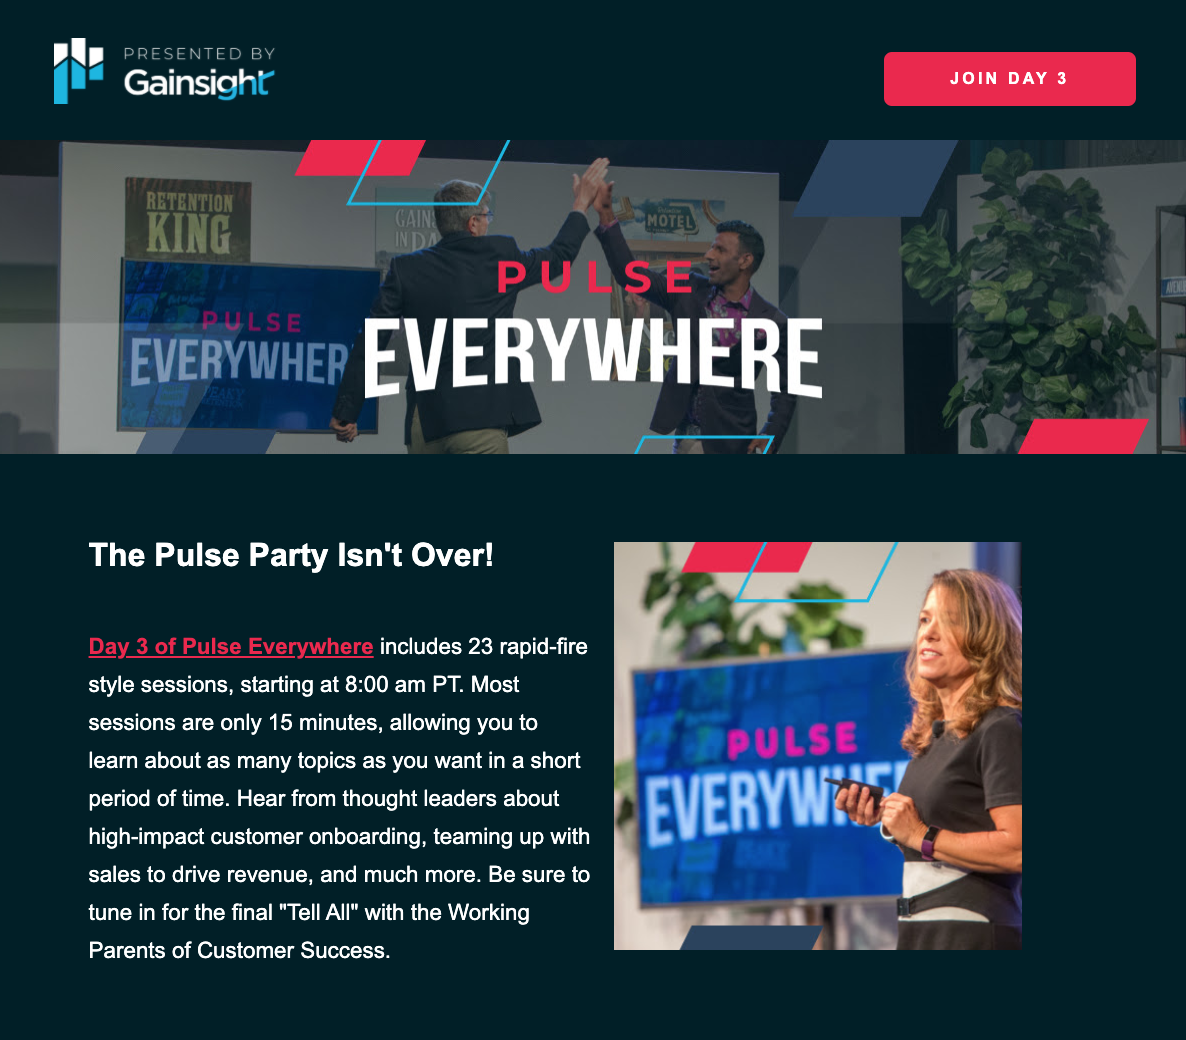 Gainsight Bizzabo event email example